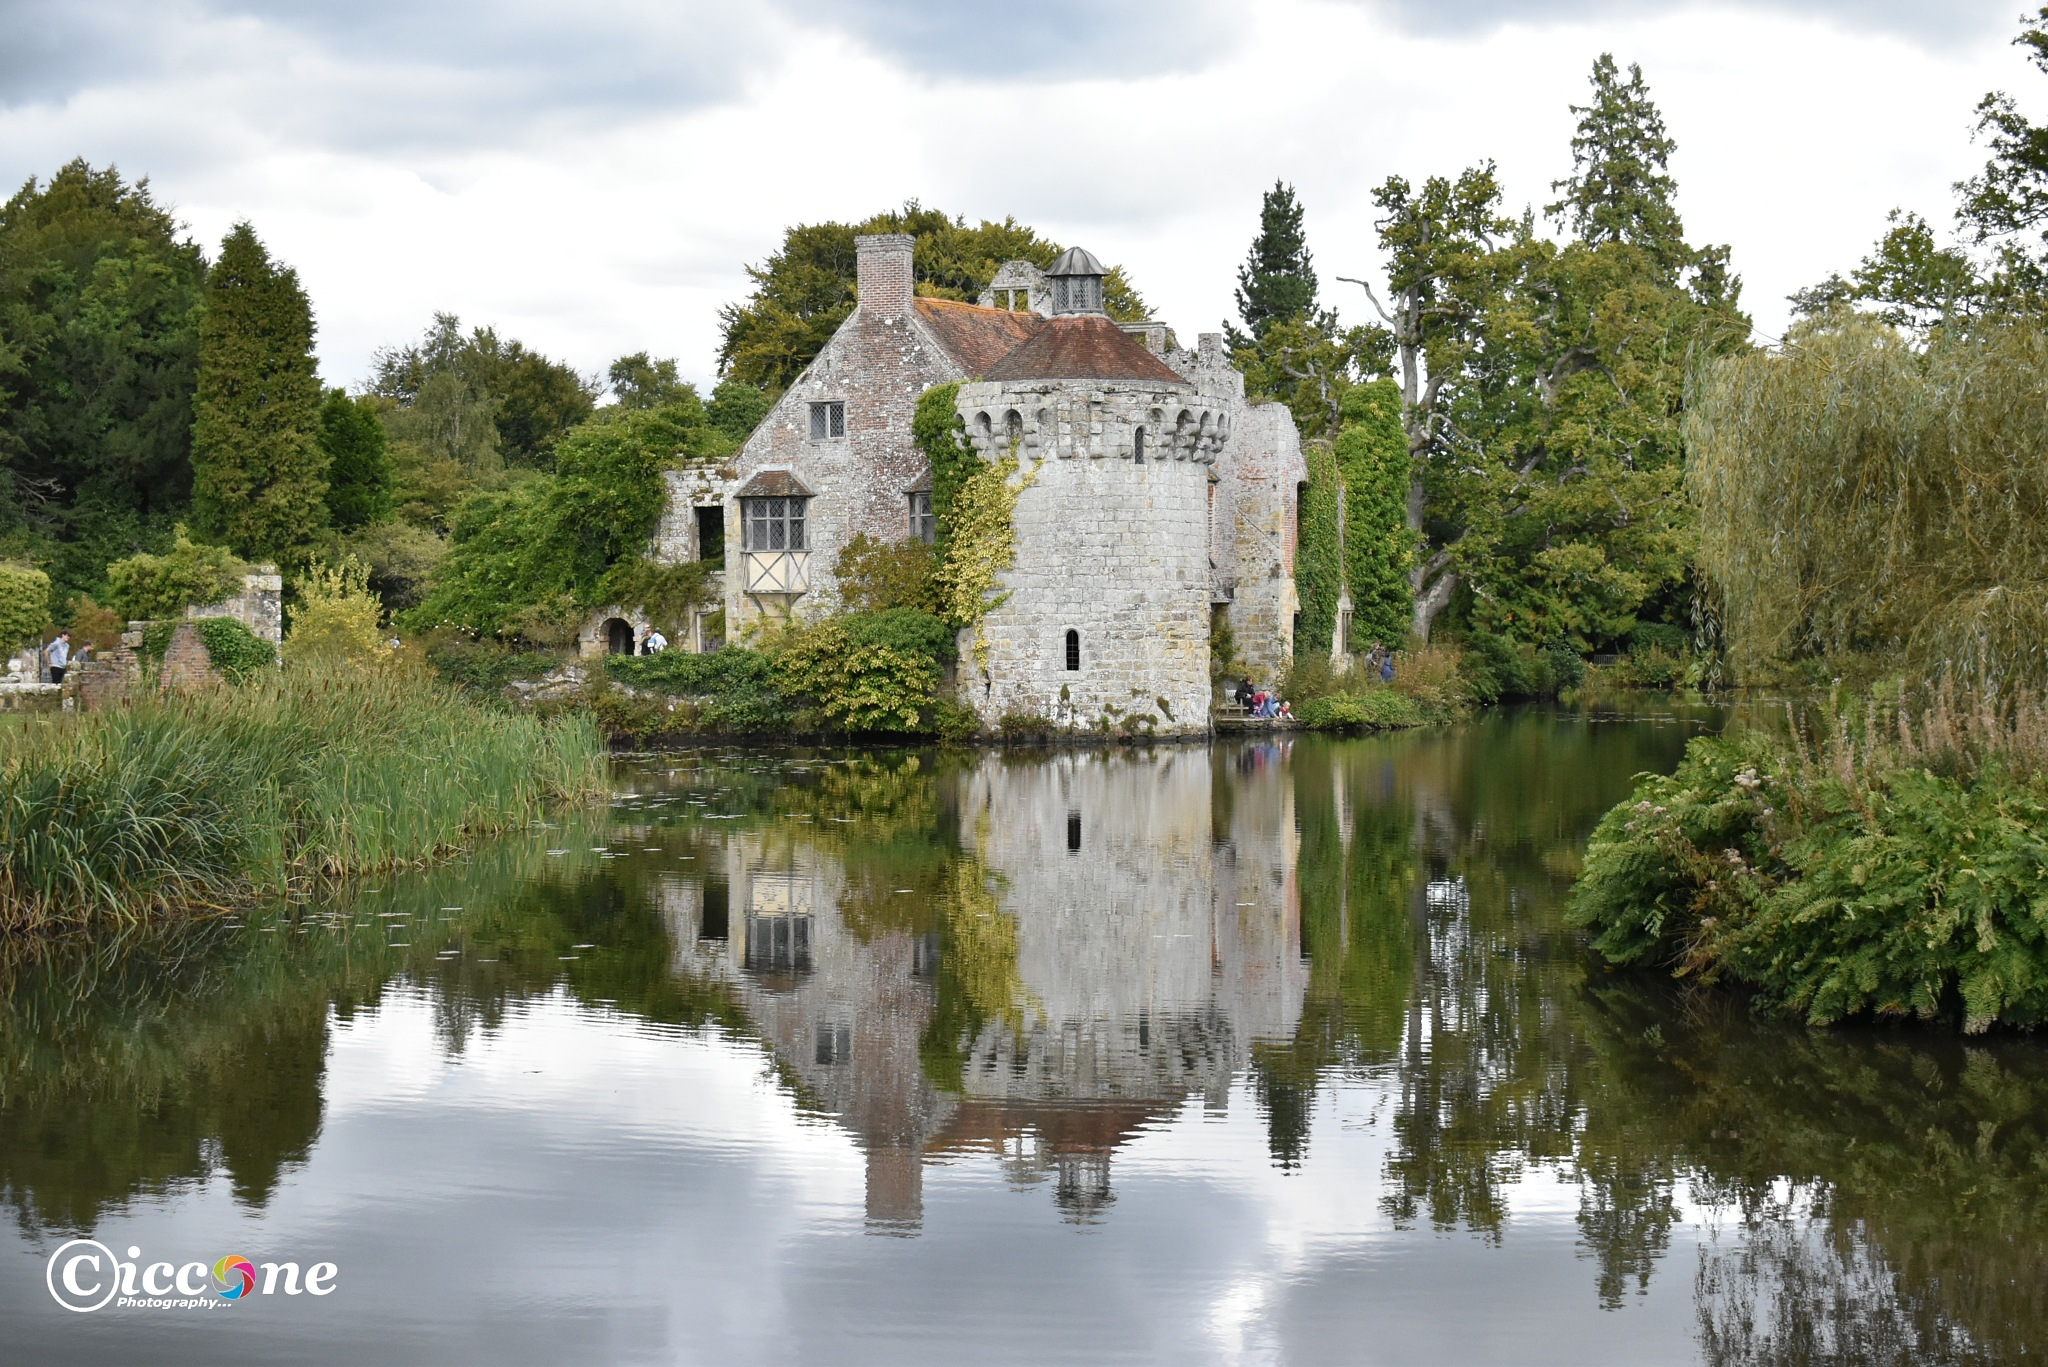 Scotney Castle National Trust  by Marc Ciccone